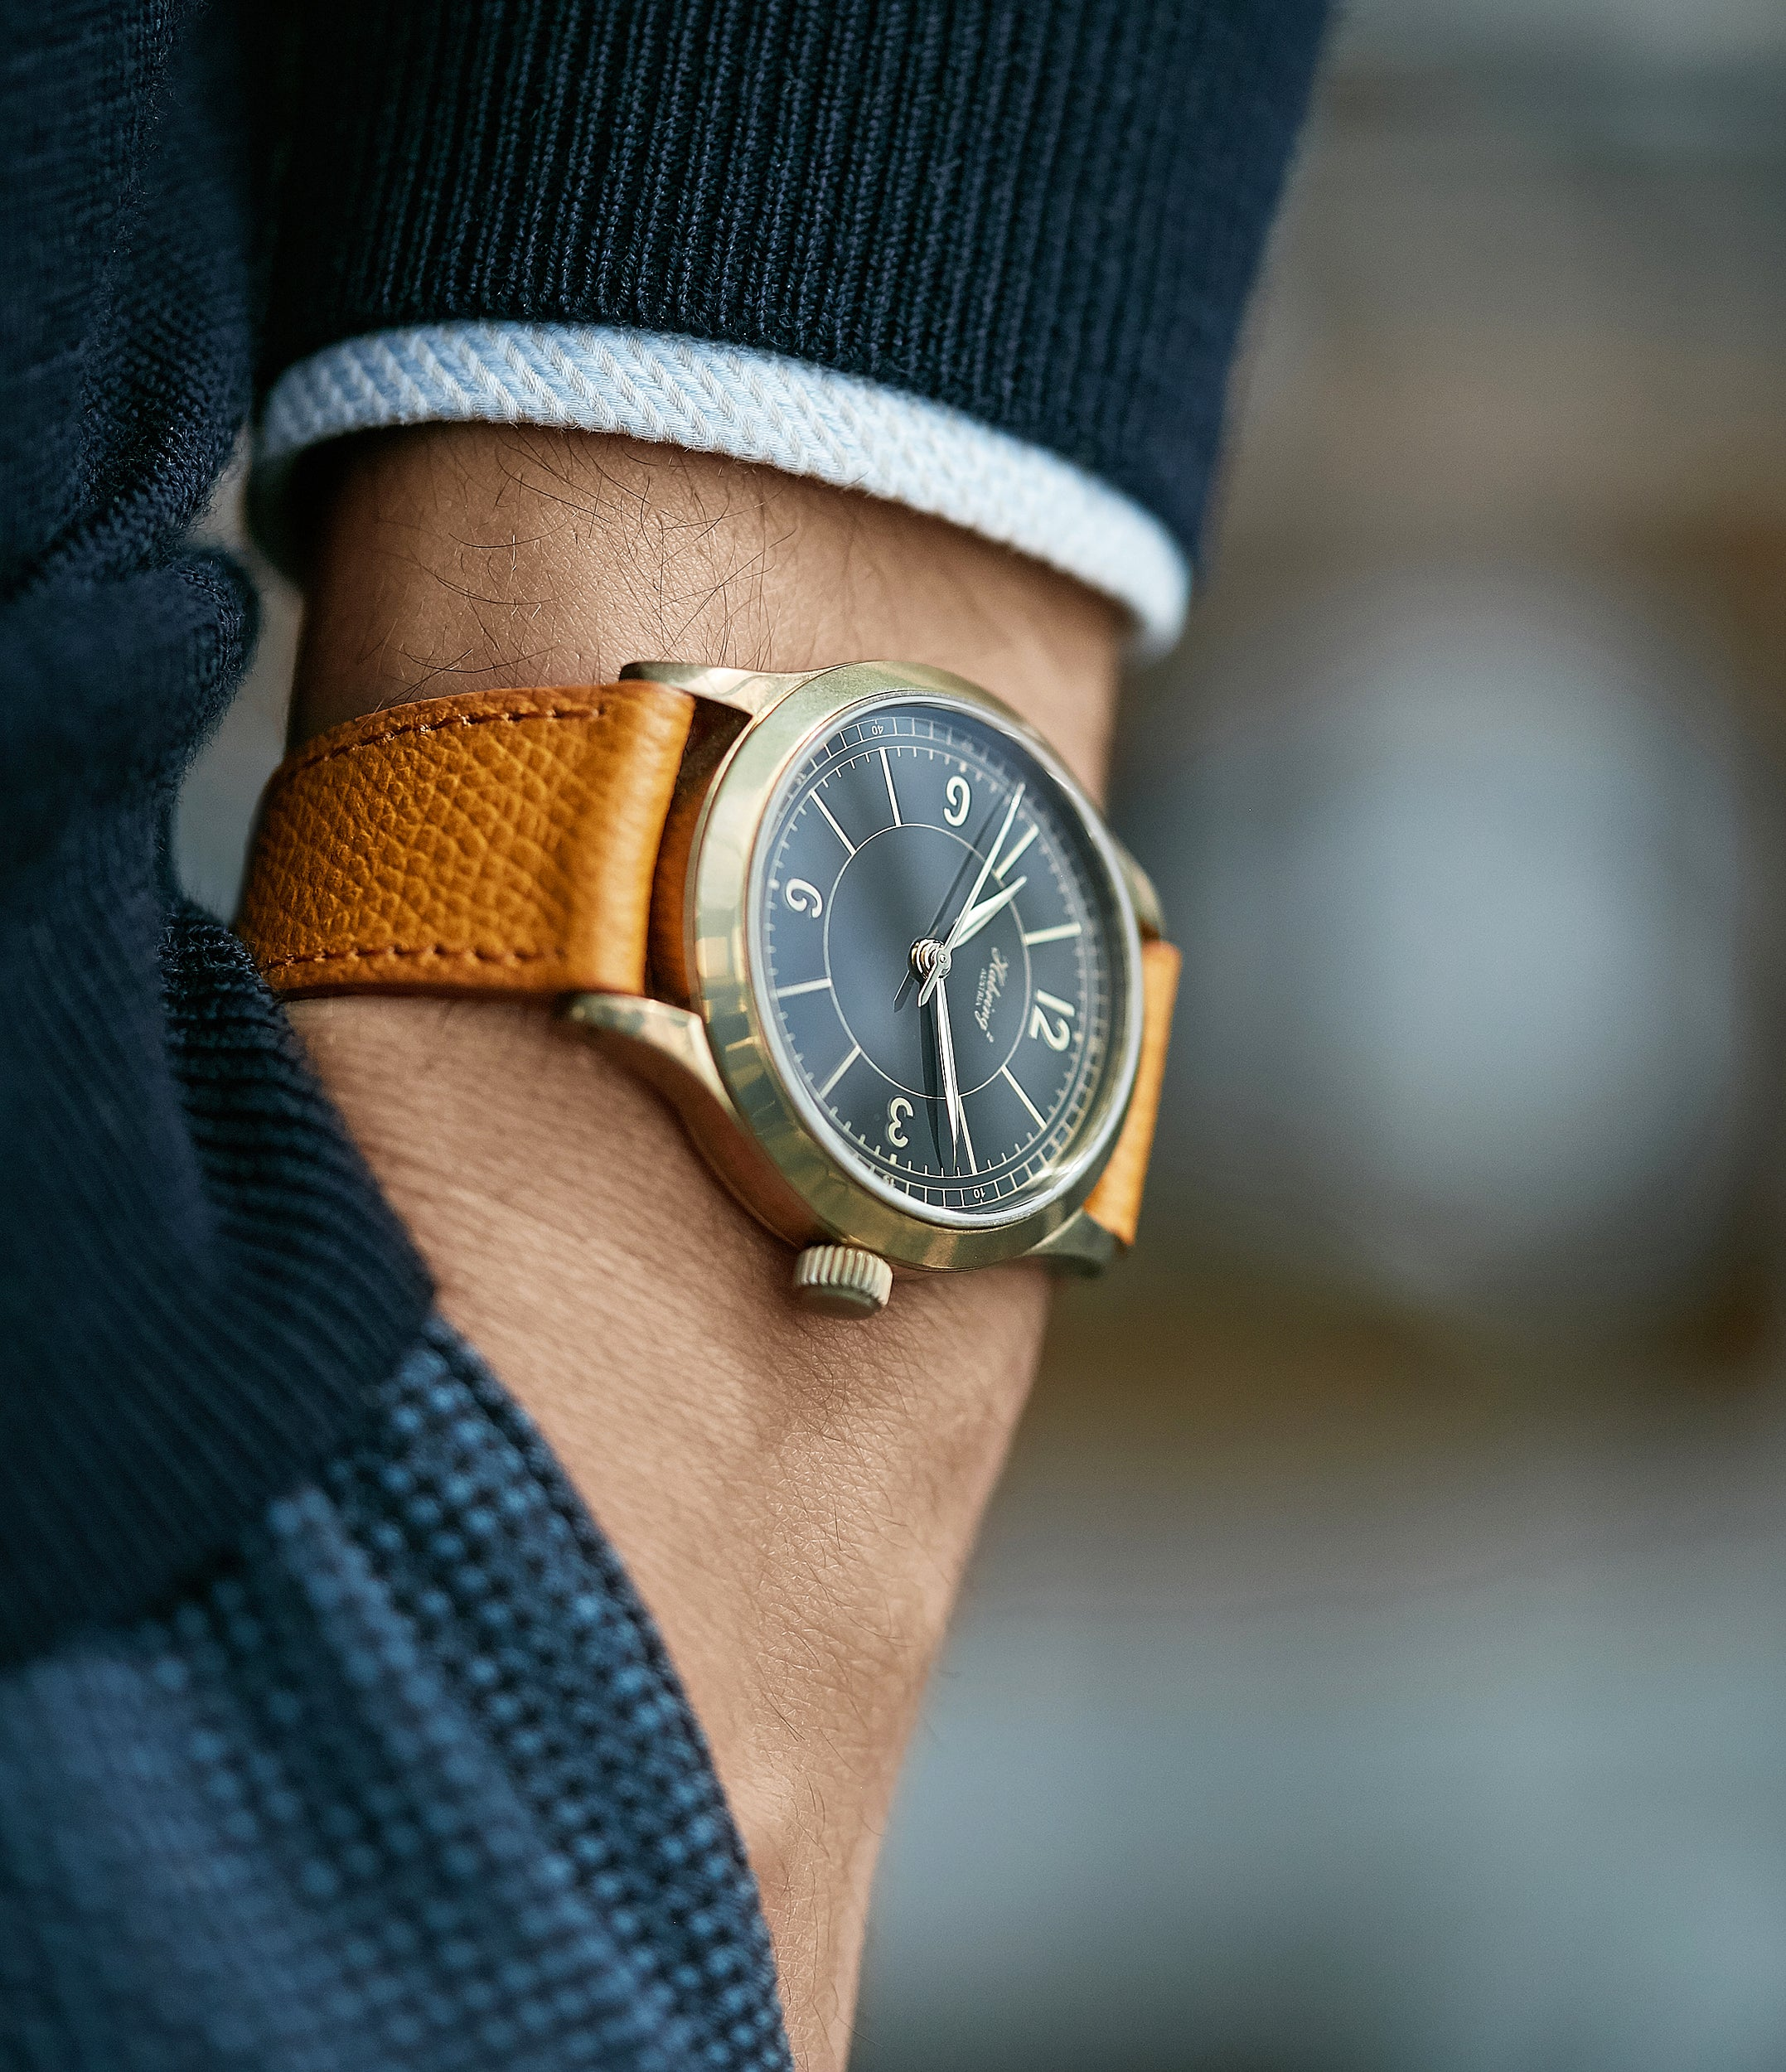 men's luxury dress watch Habring2 Erwin LAB 01 Massena LAB Limited Edition bronze independent watchmaker dress watch for sale online at A Collected Man London UK rare watches